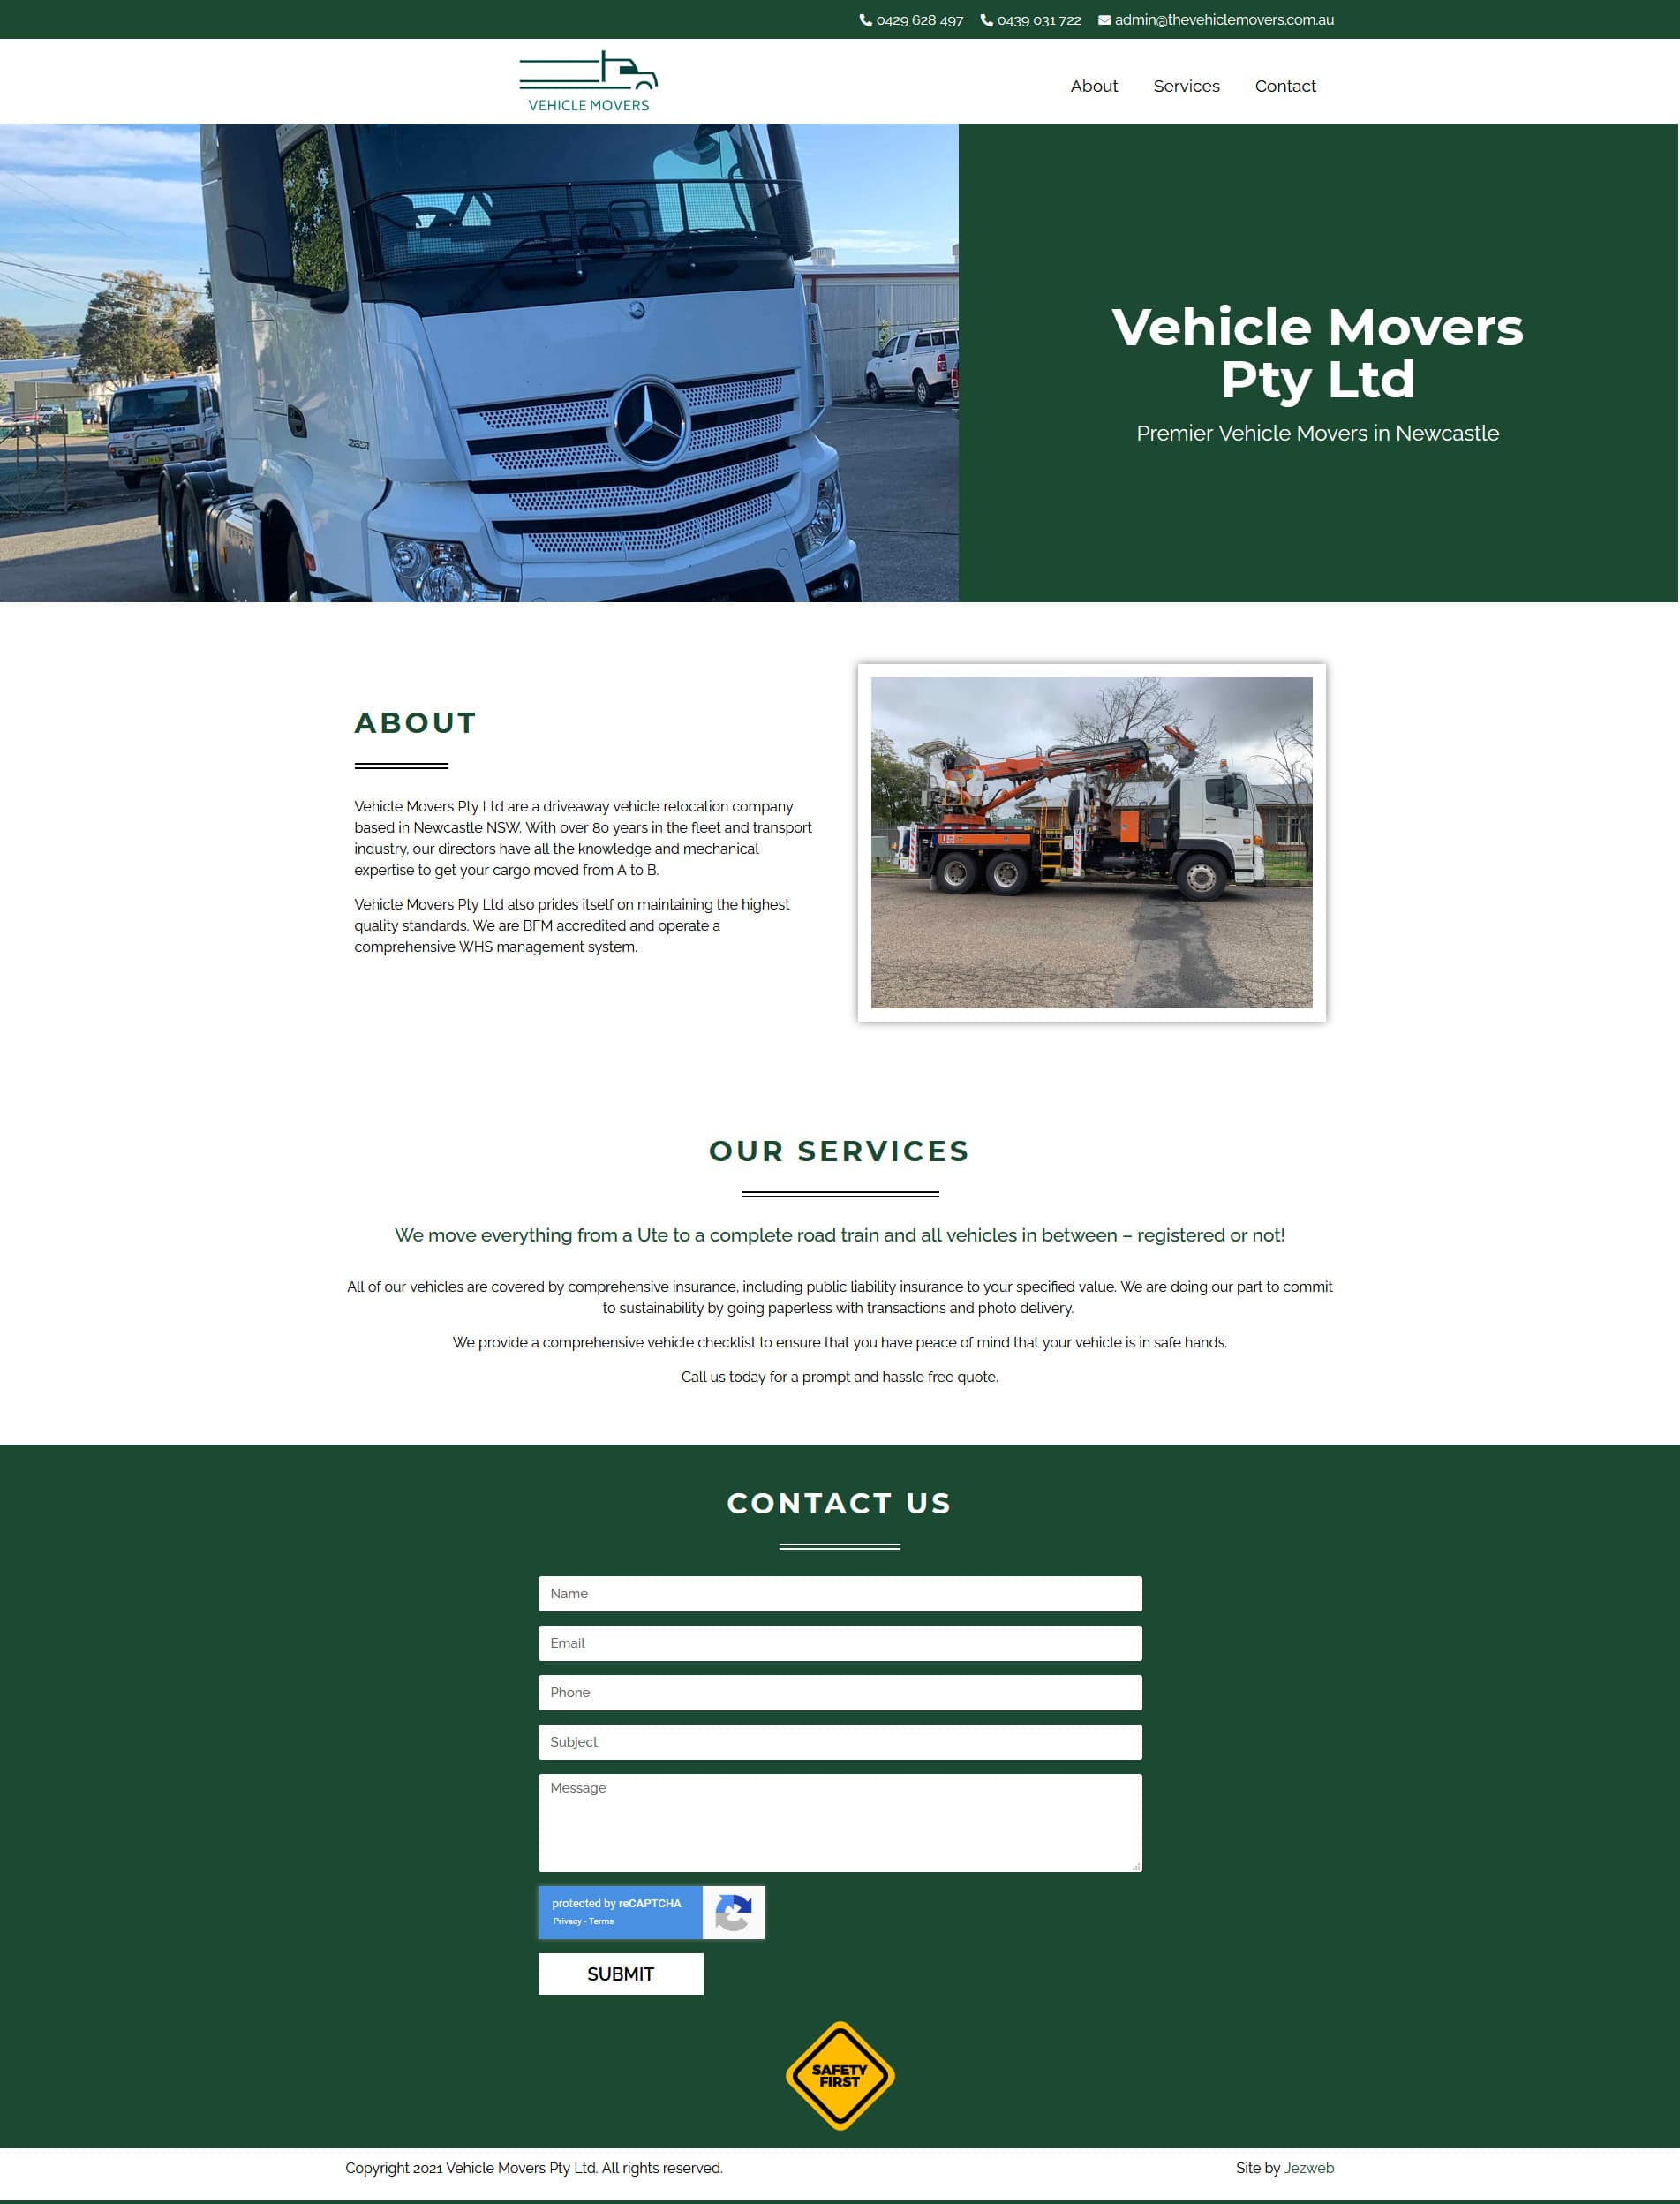 The Vehicle Movers -